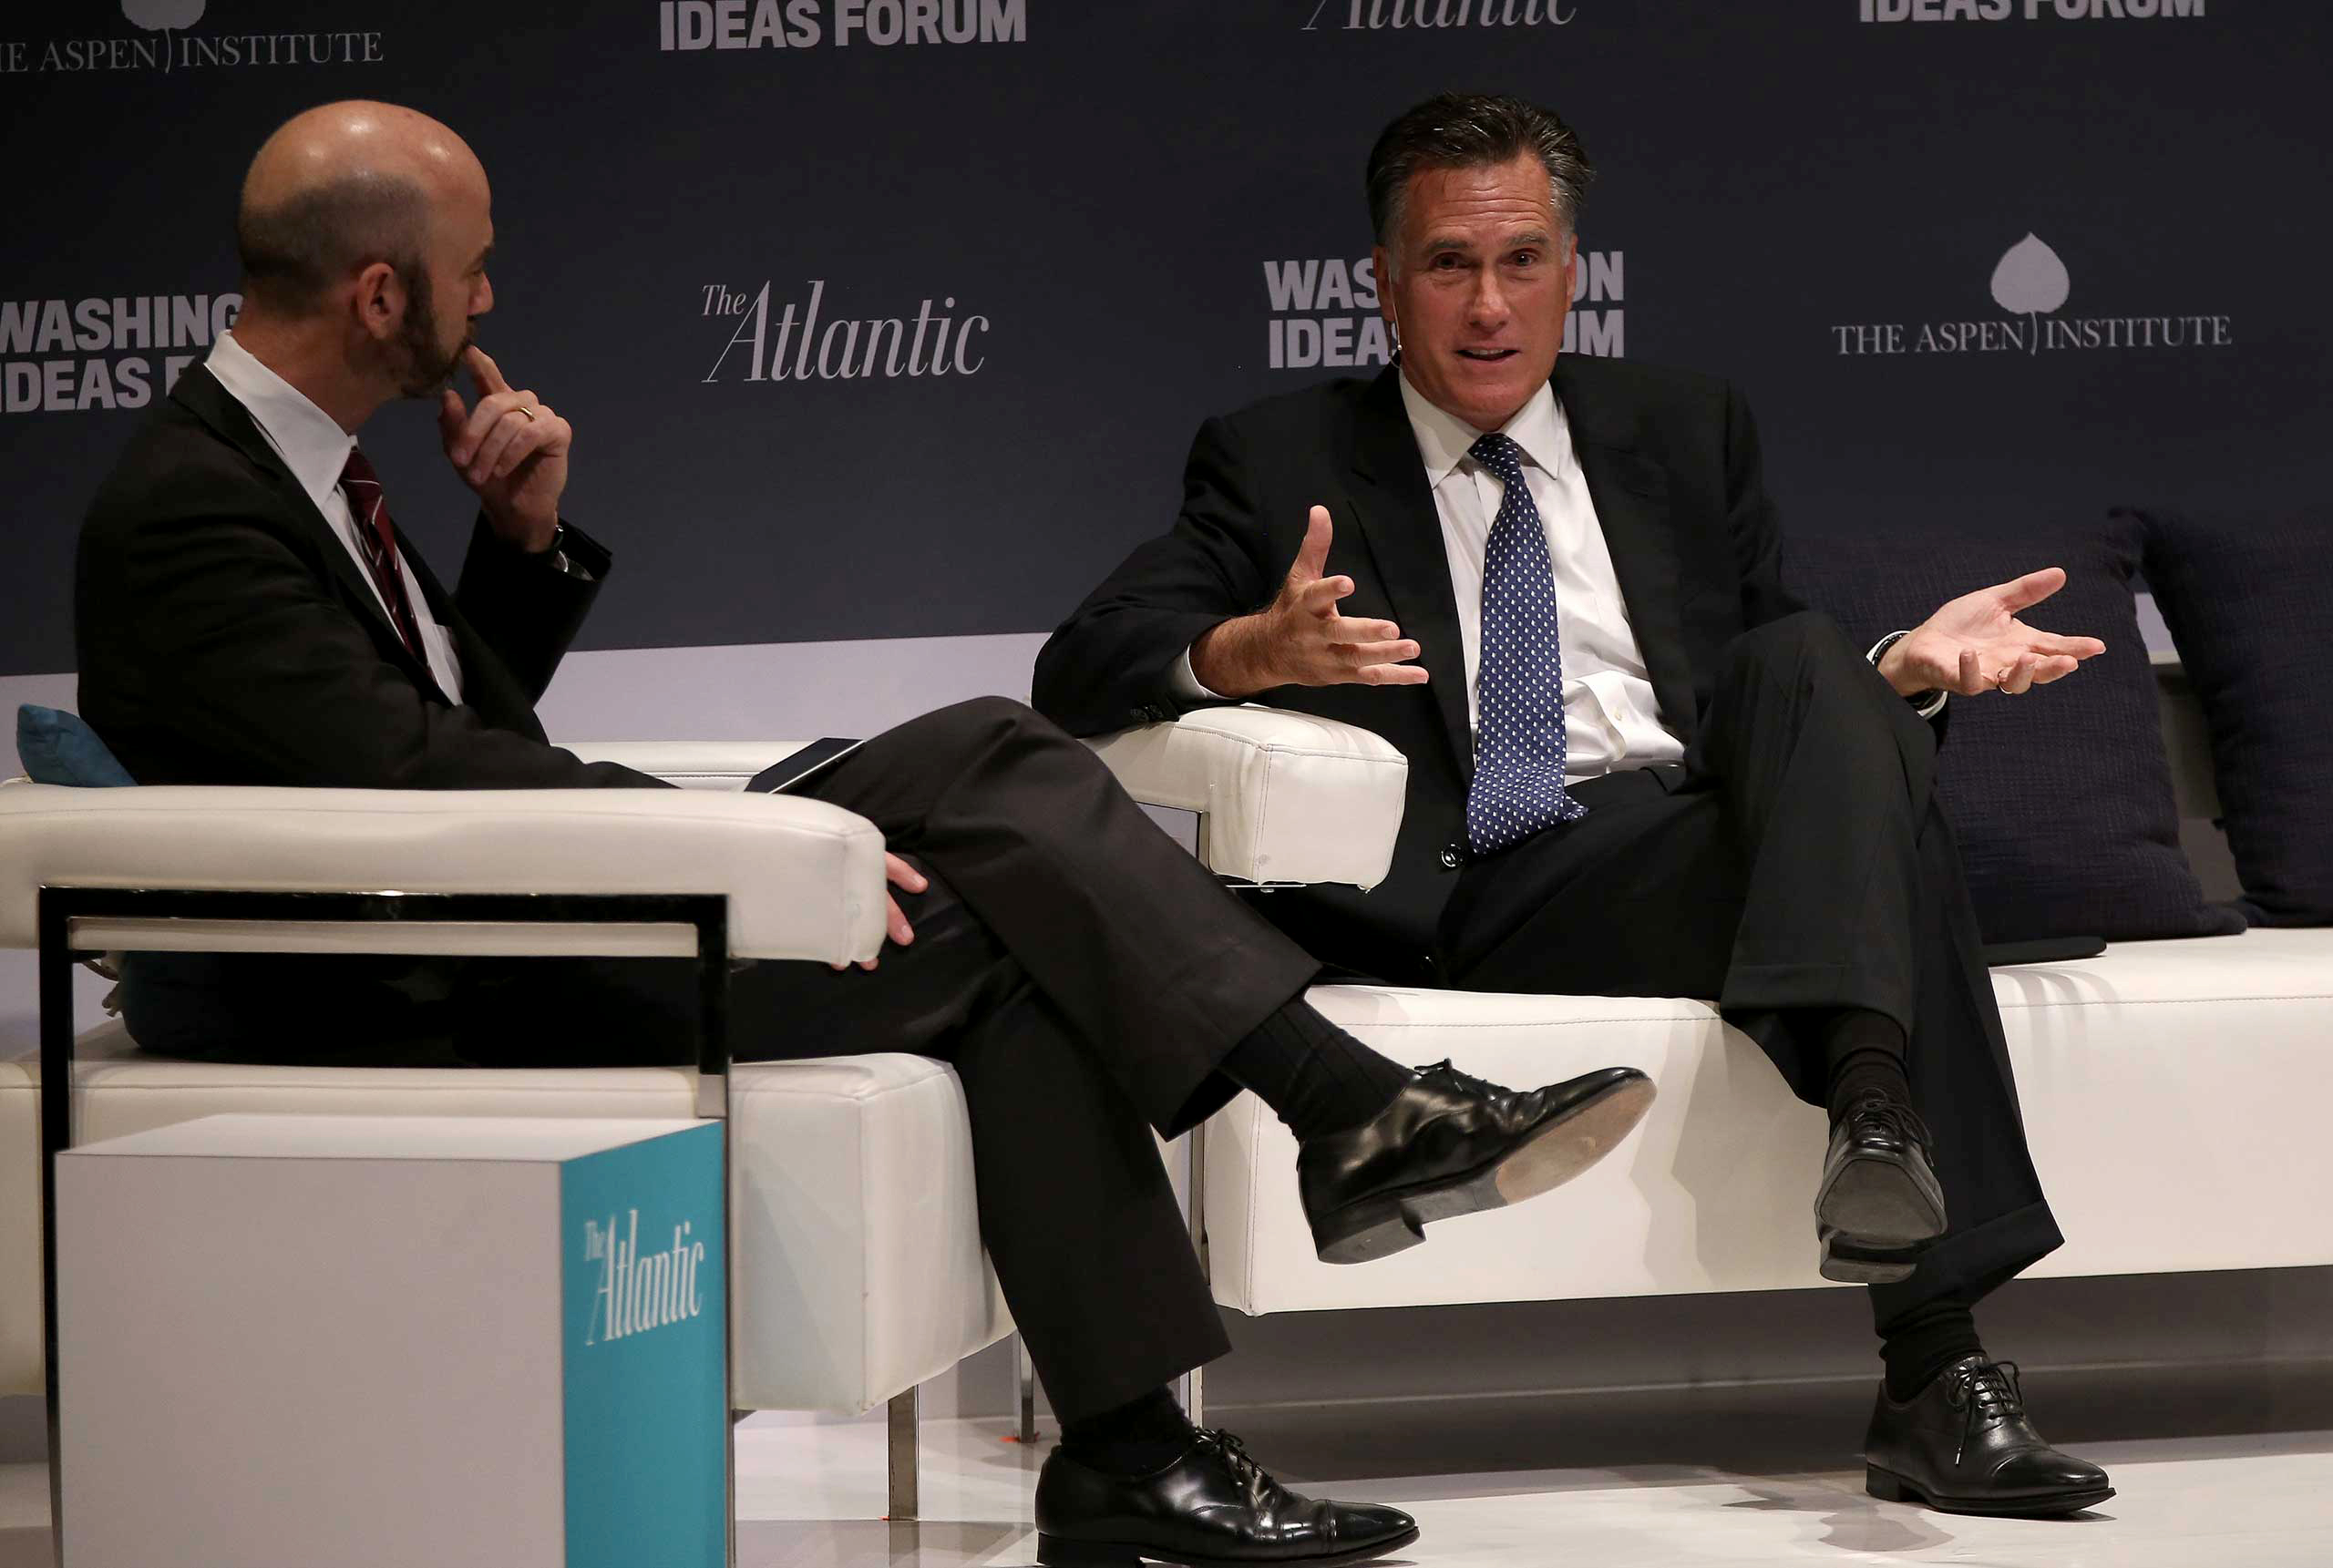 Former Republican presidential candidate Mitt Romney (R) speaks at the Washington Ideas Forum with James Bennet (L), of The Atlantic, in Washington, DC., Sept. 30, 2015.